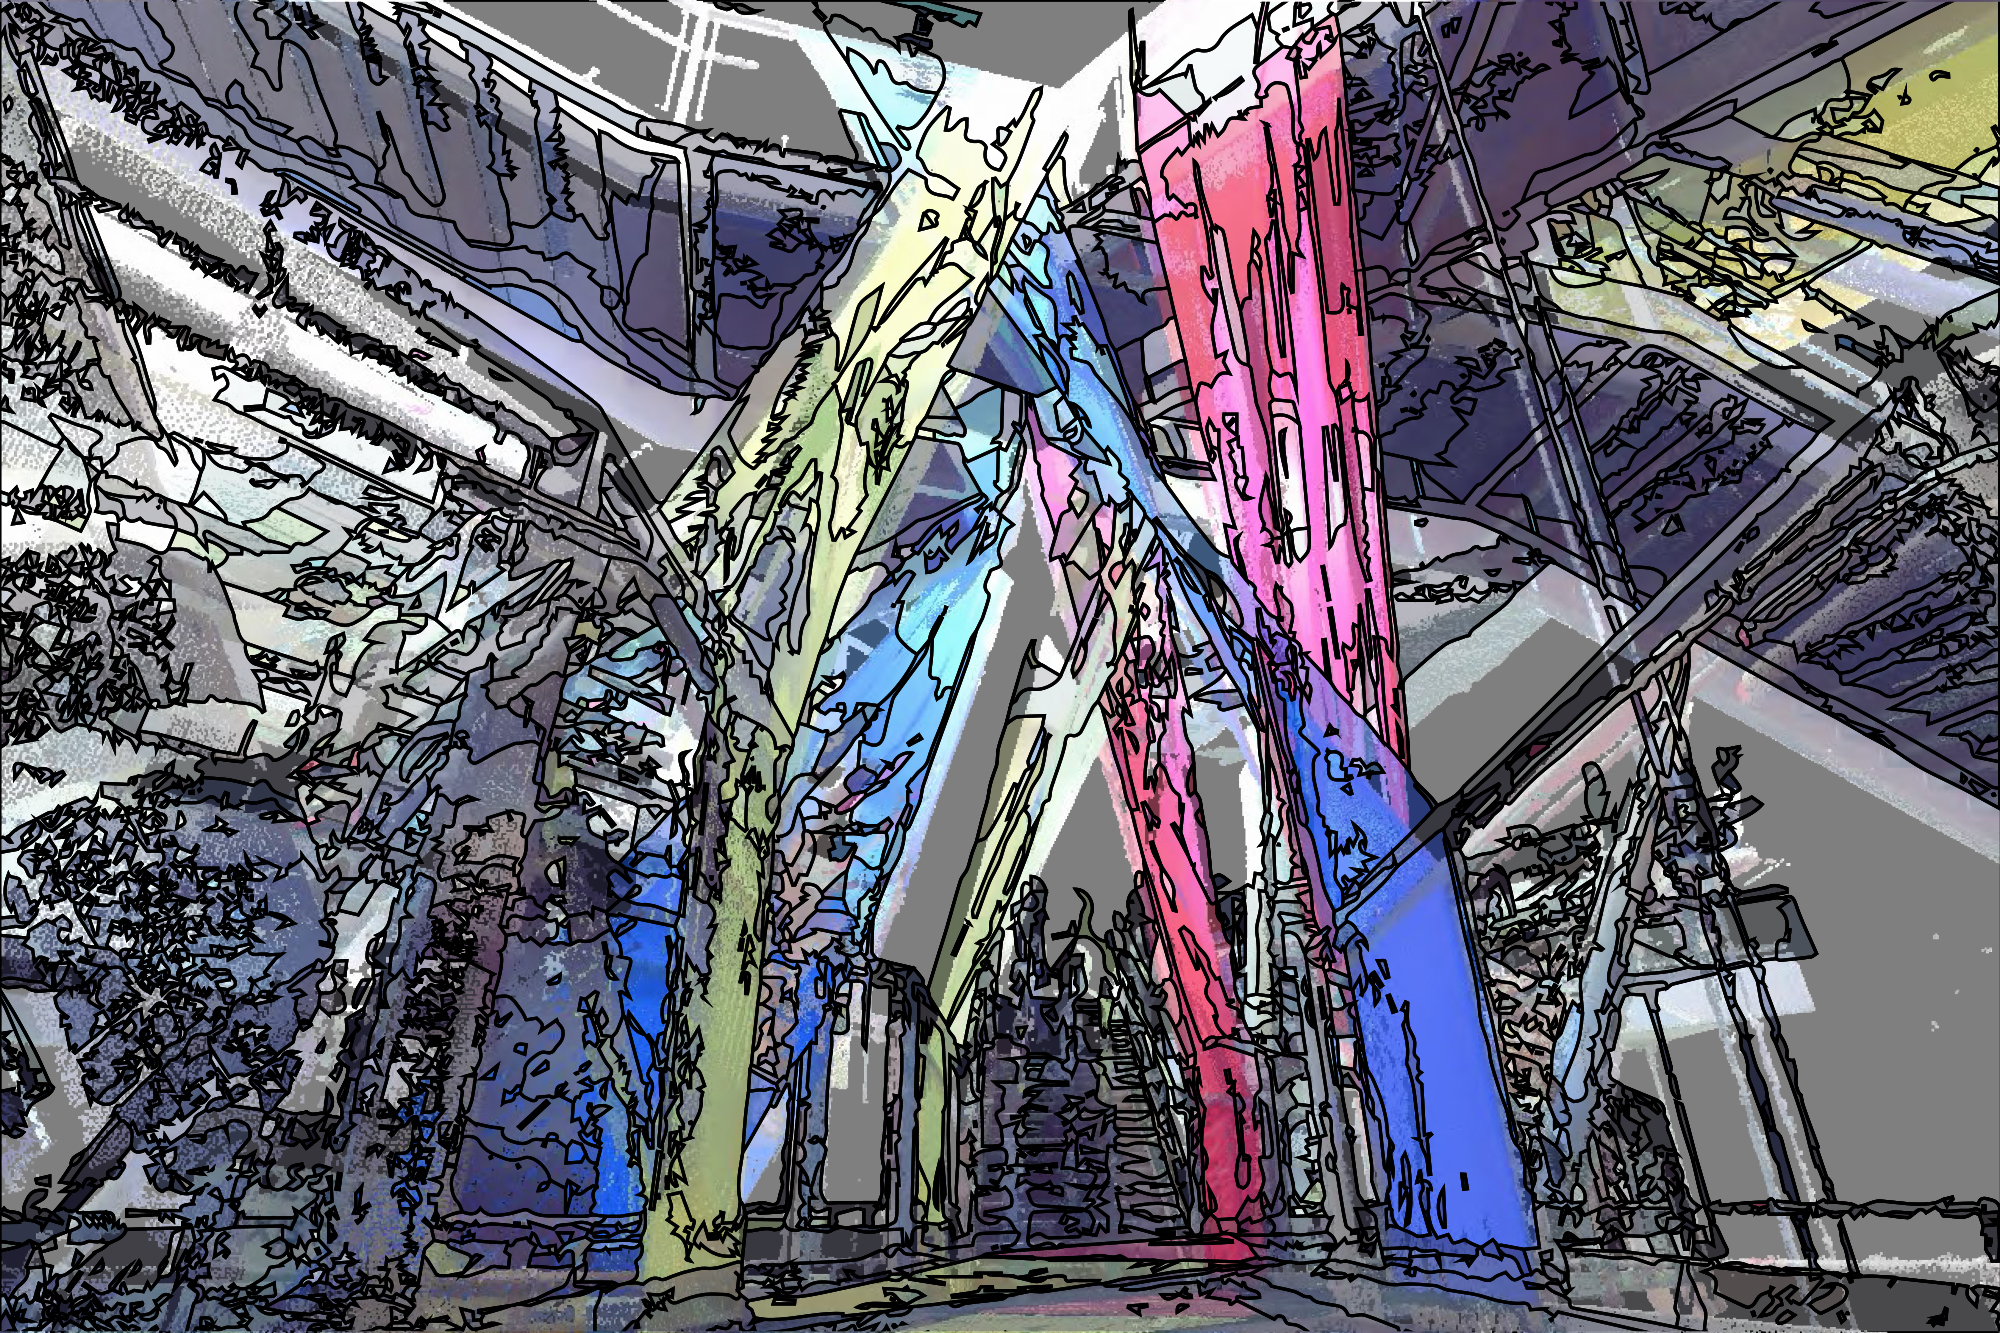 CIty-College-New-York-CUNY-ValmiraGashi-3D-laser-scanning-point-cloud-new-york-3.jpg